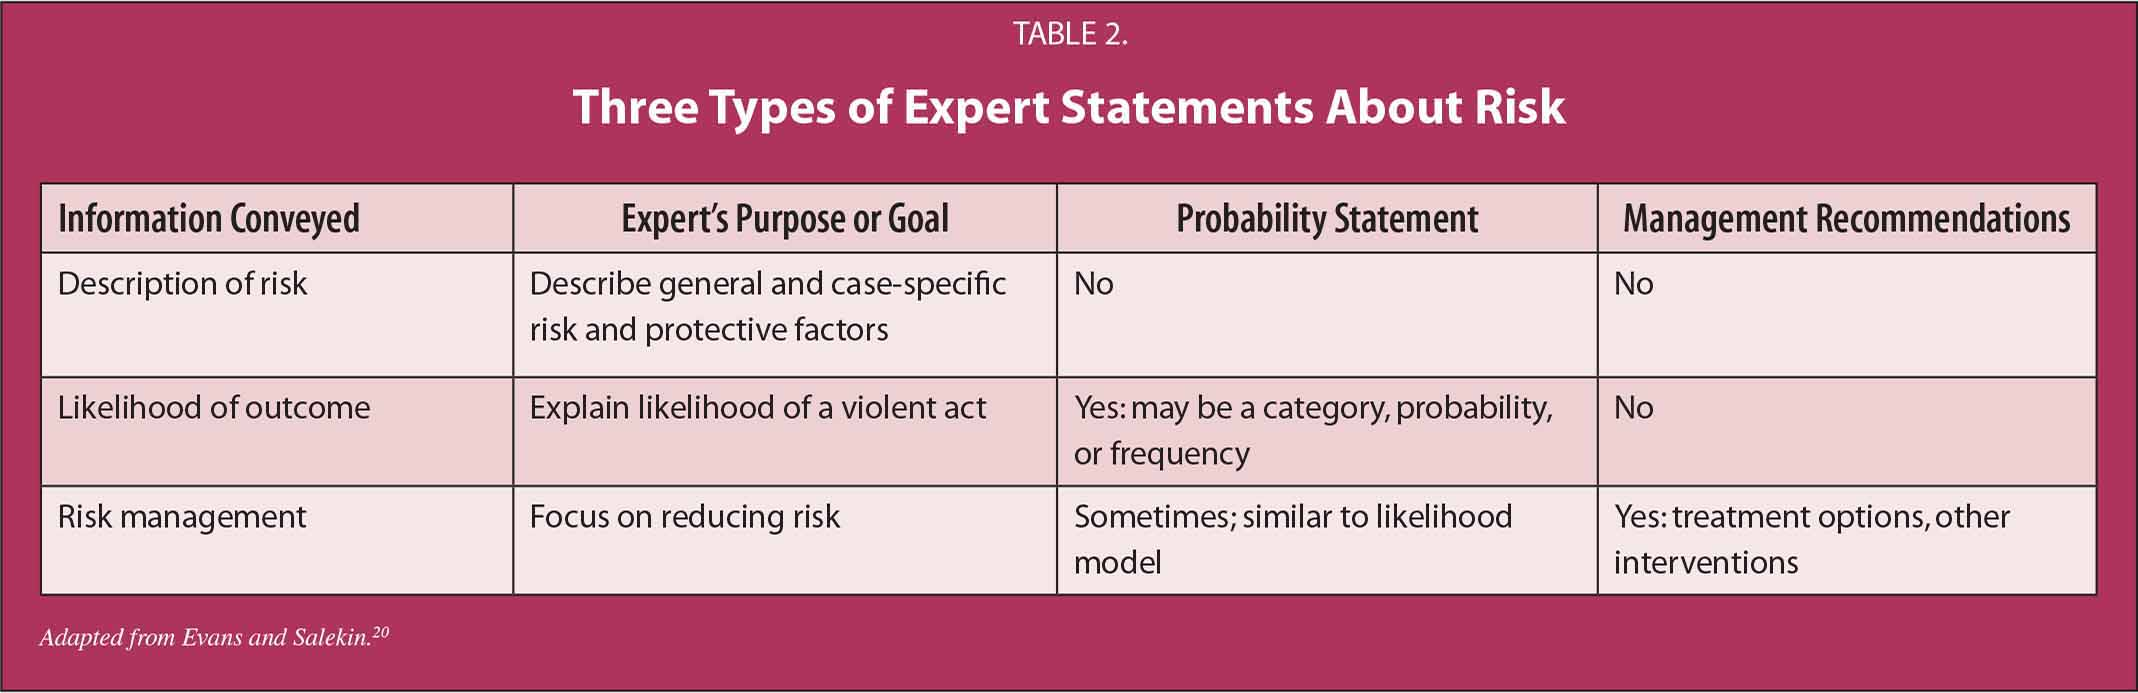 Three Types of Expert Statements About Risk